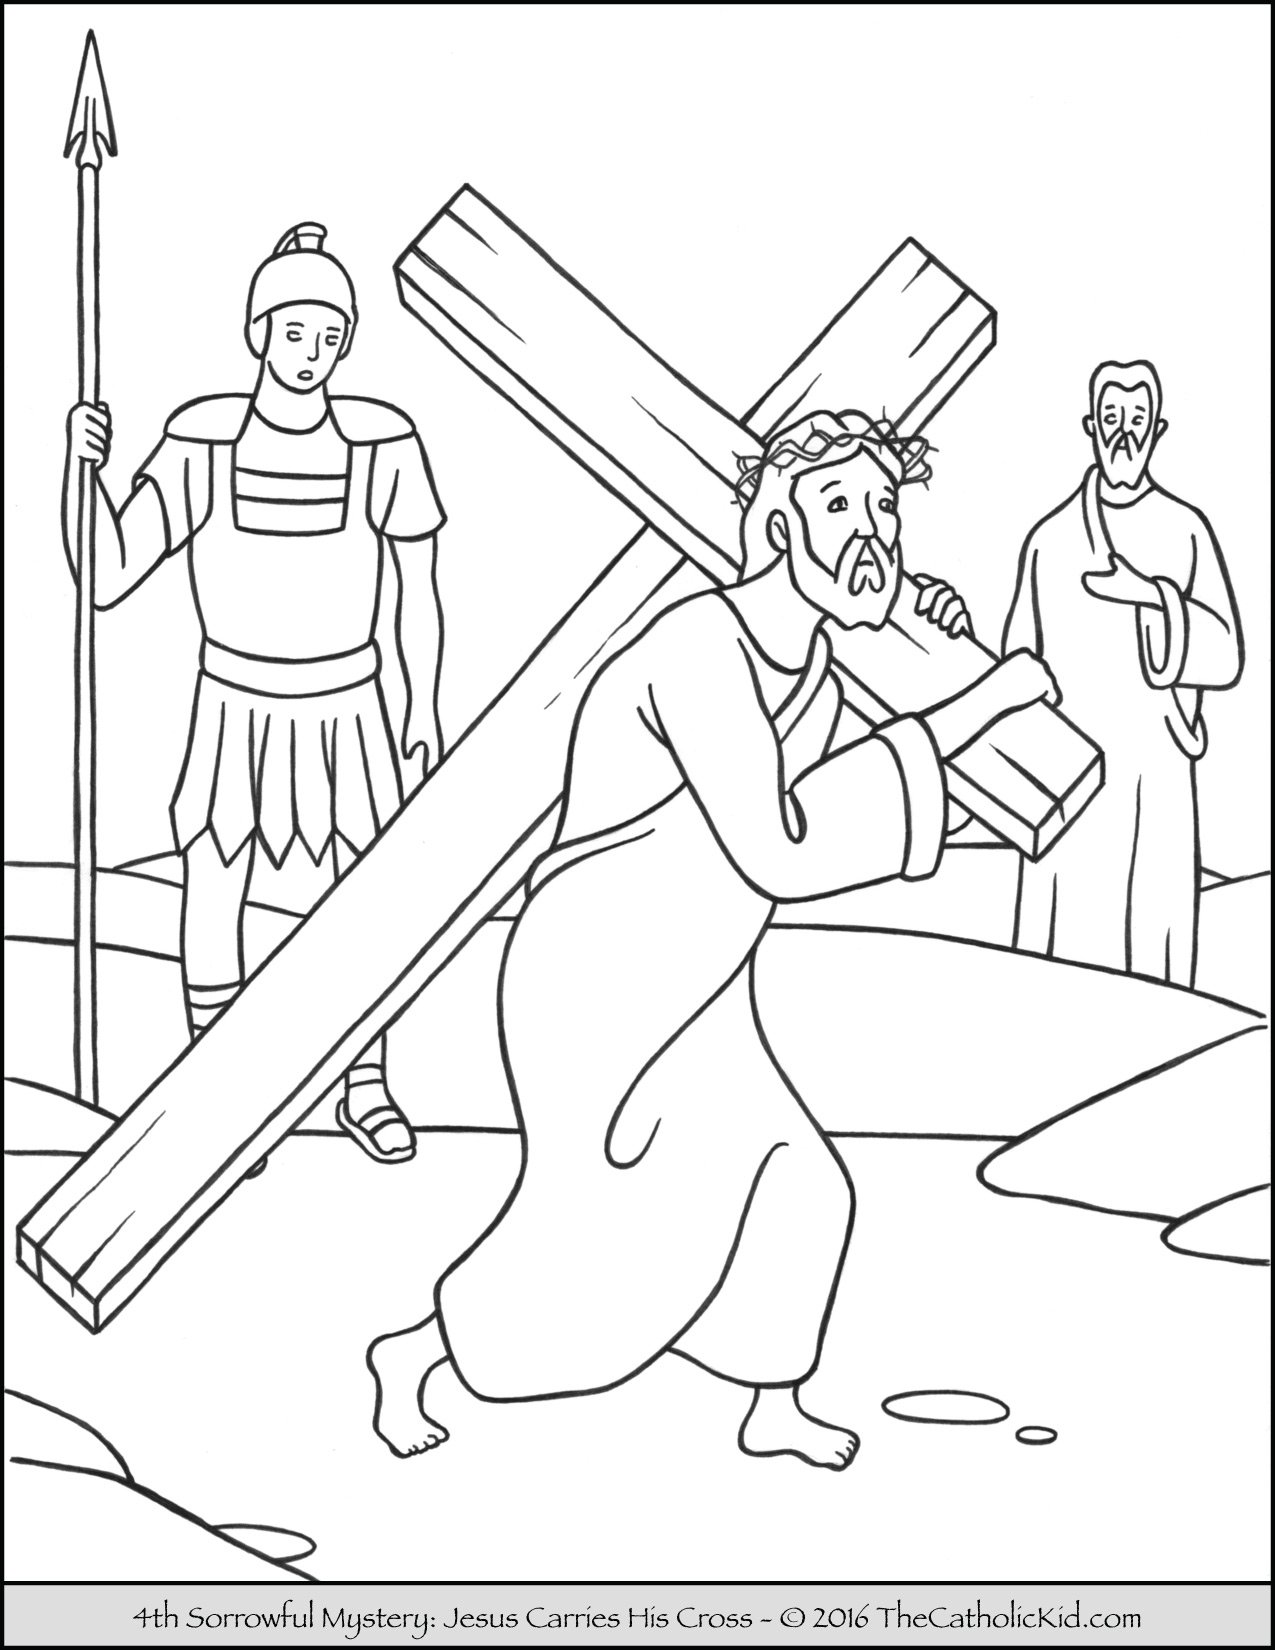 Sorrowful Mysteries Rosary Coloring Pages - Jesus Carries His Cross